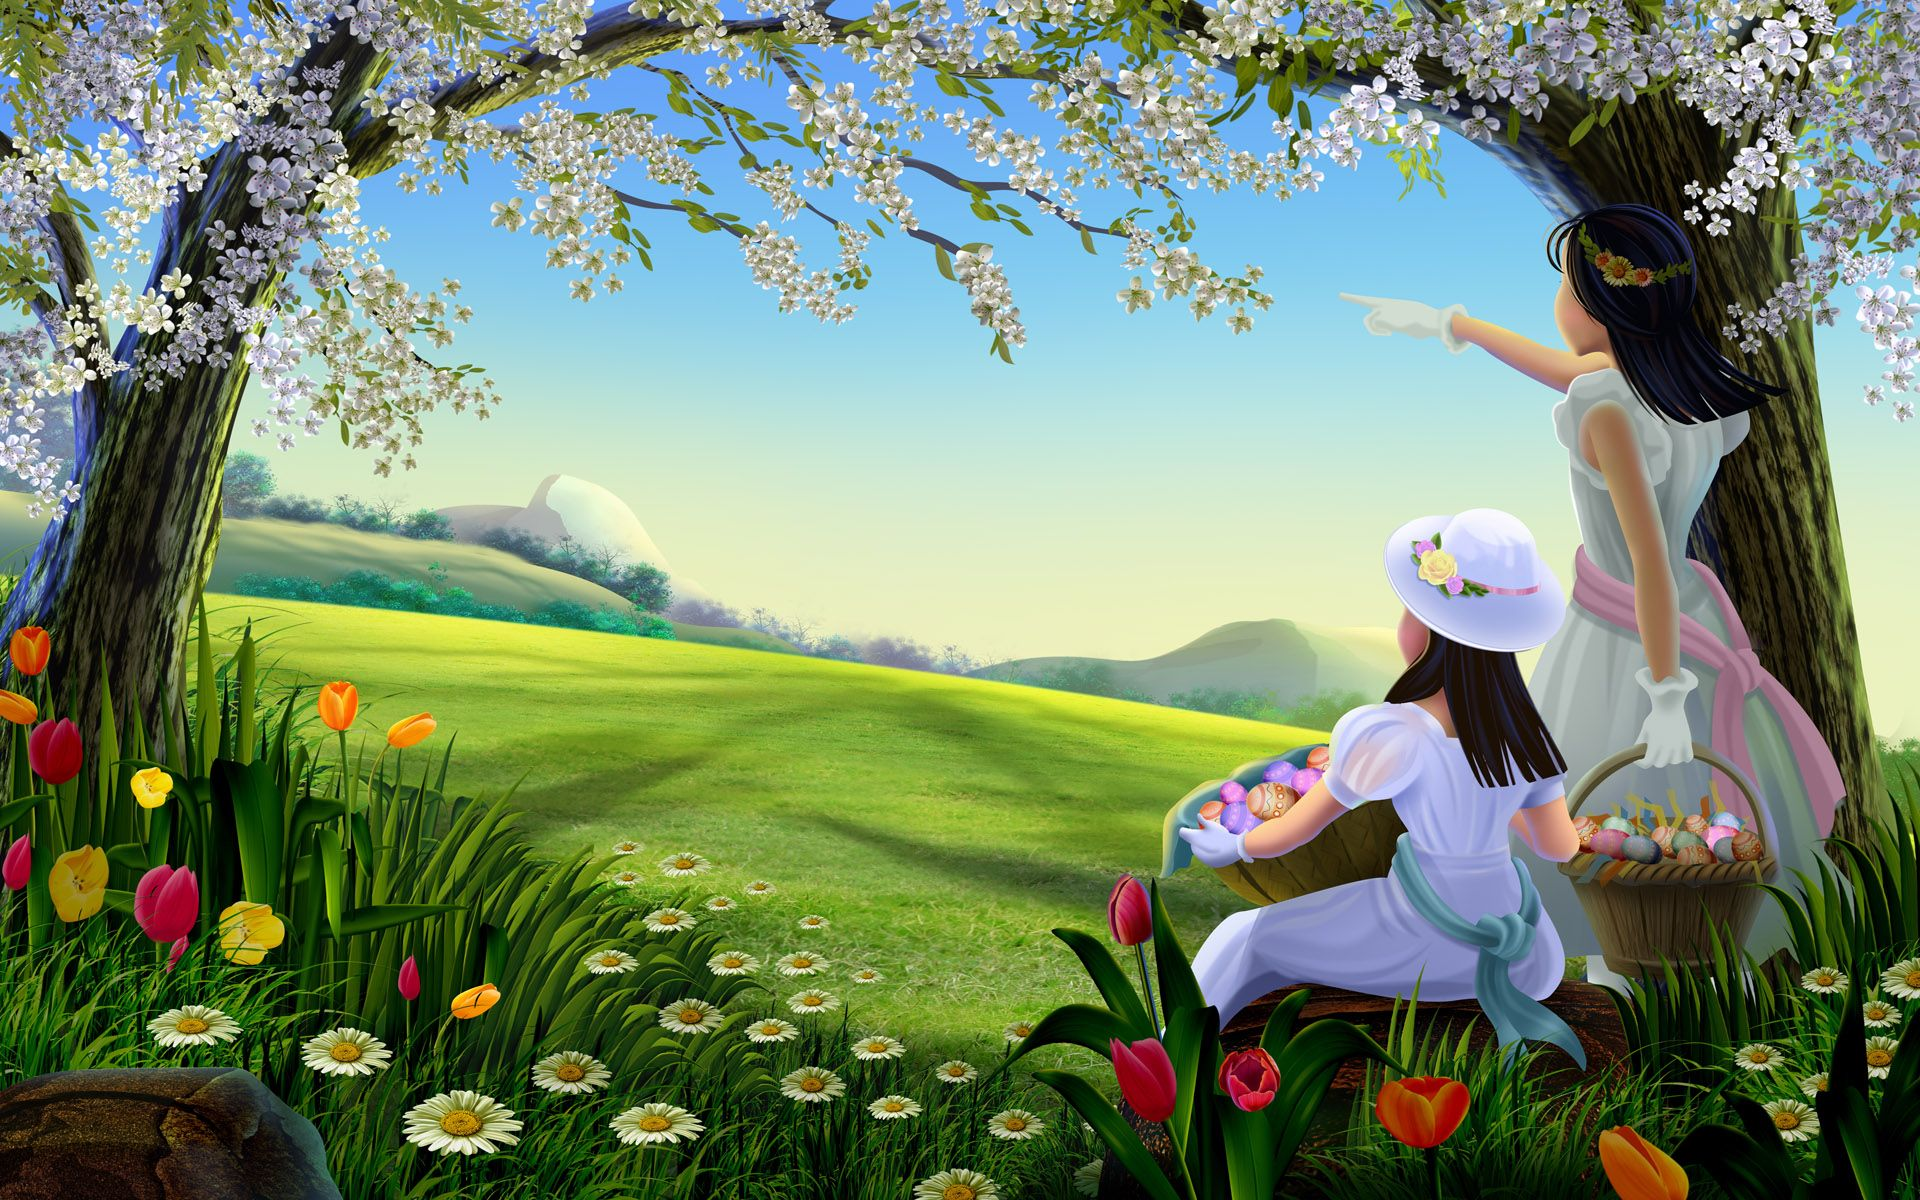 Fairy Tale Natural Full Hd Cartoon Wallpapers Free Download